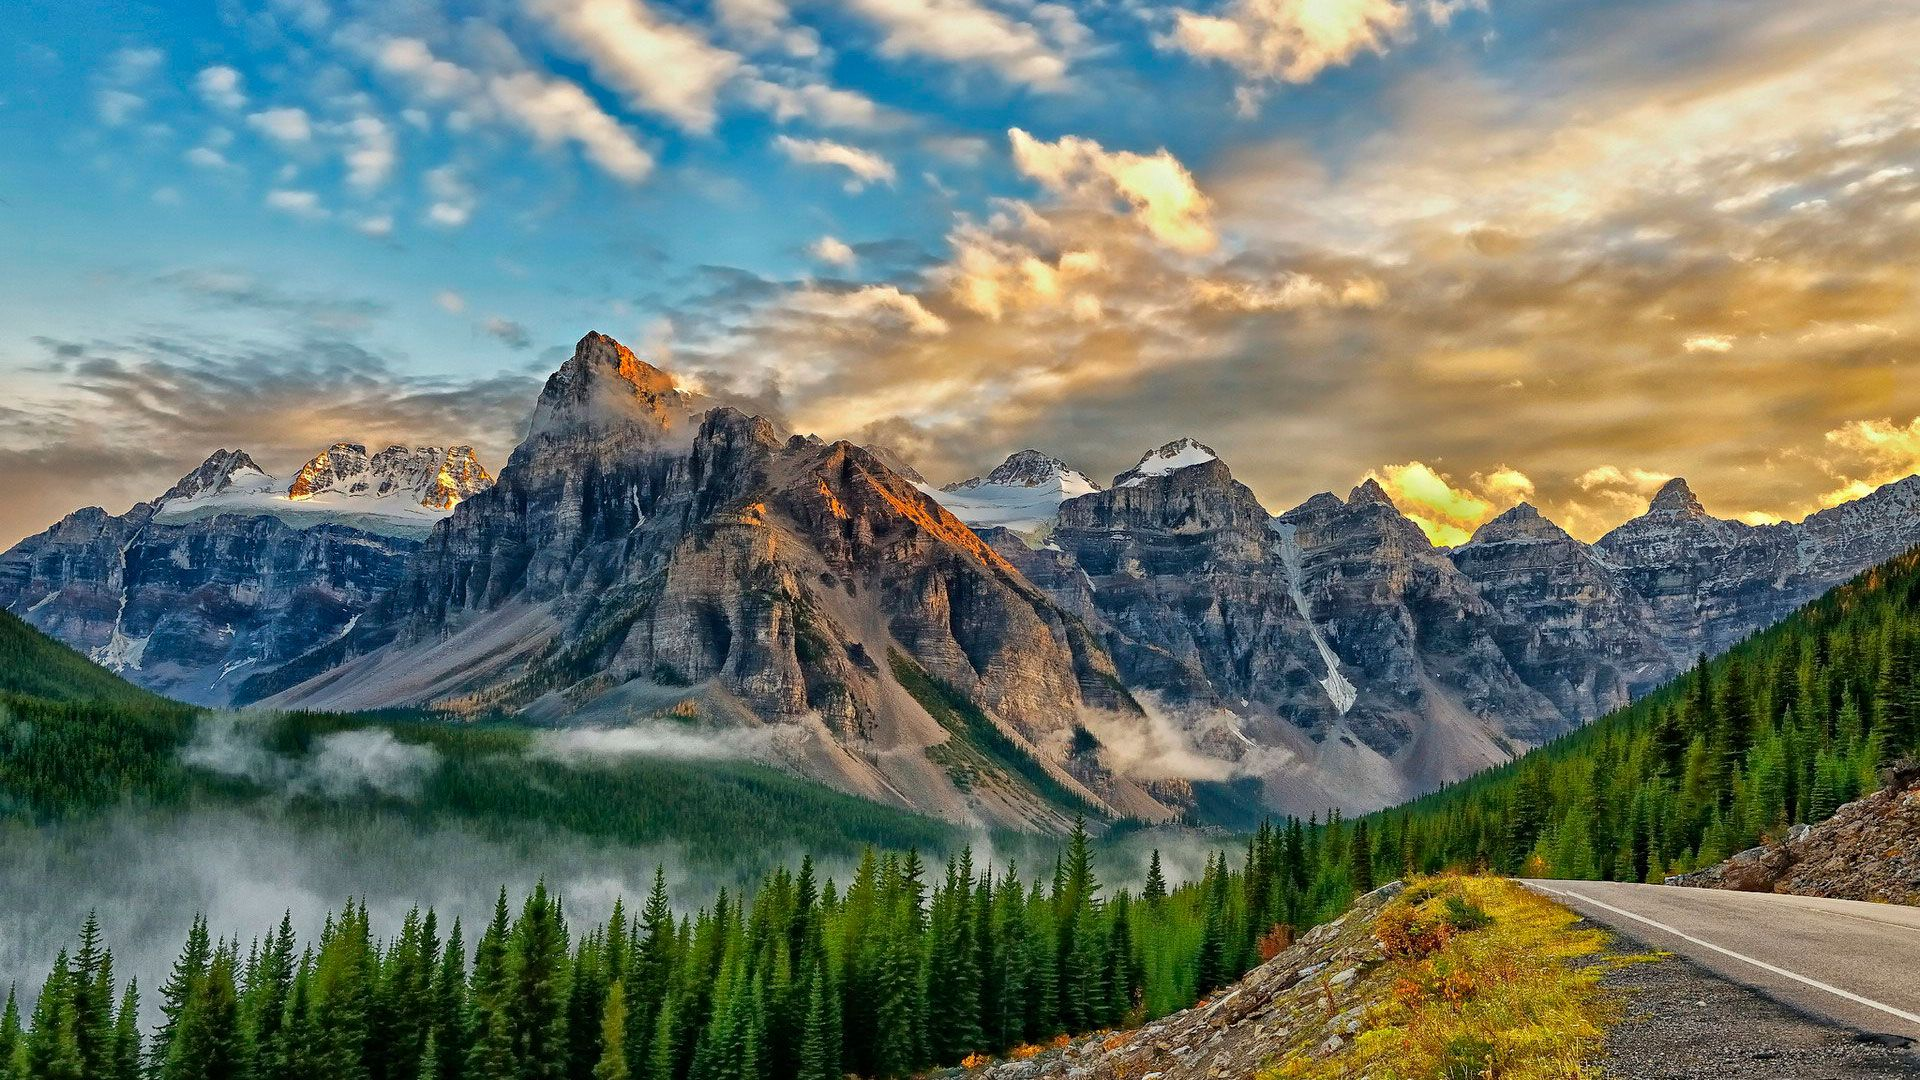 Beautiful Scenery Full HD Wallpaper Banff national park